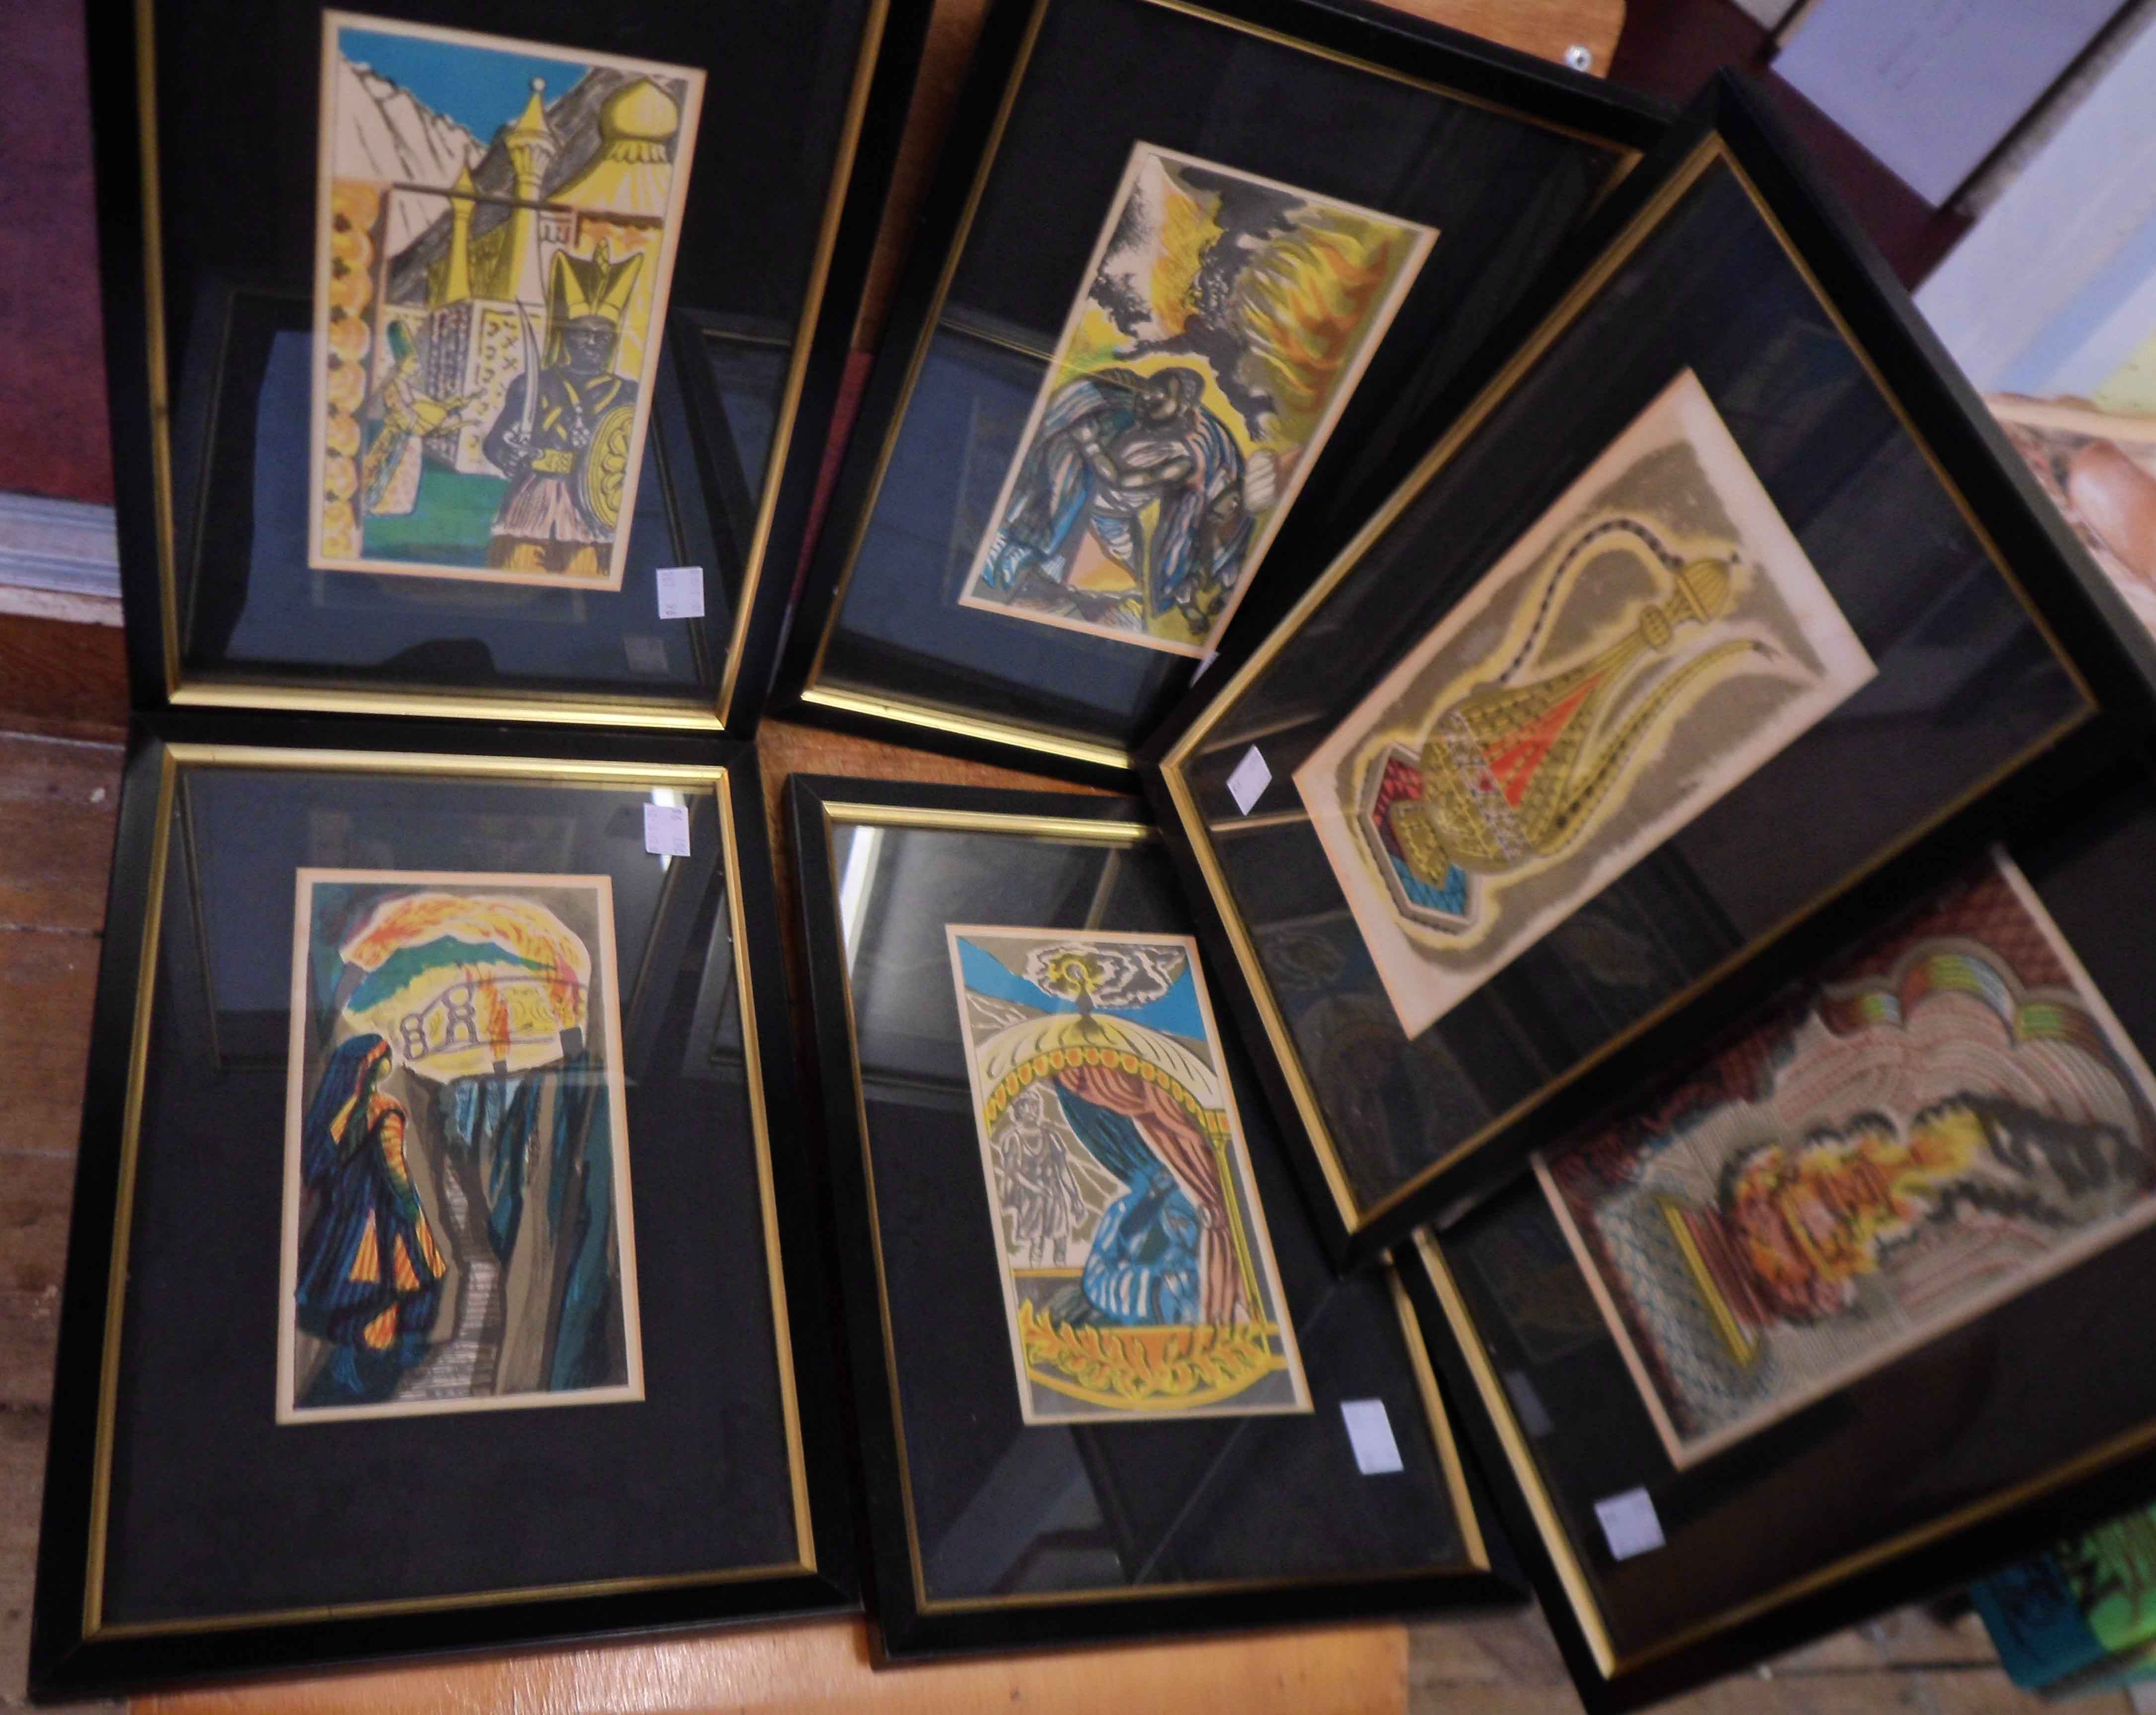 †Edward Bawden: a set of six matching framed small format coloured prints depicting classical Middle